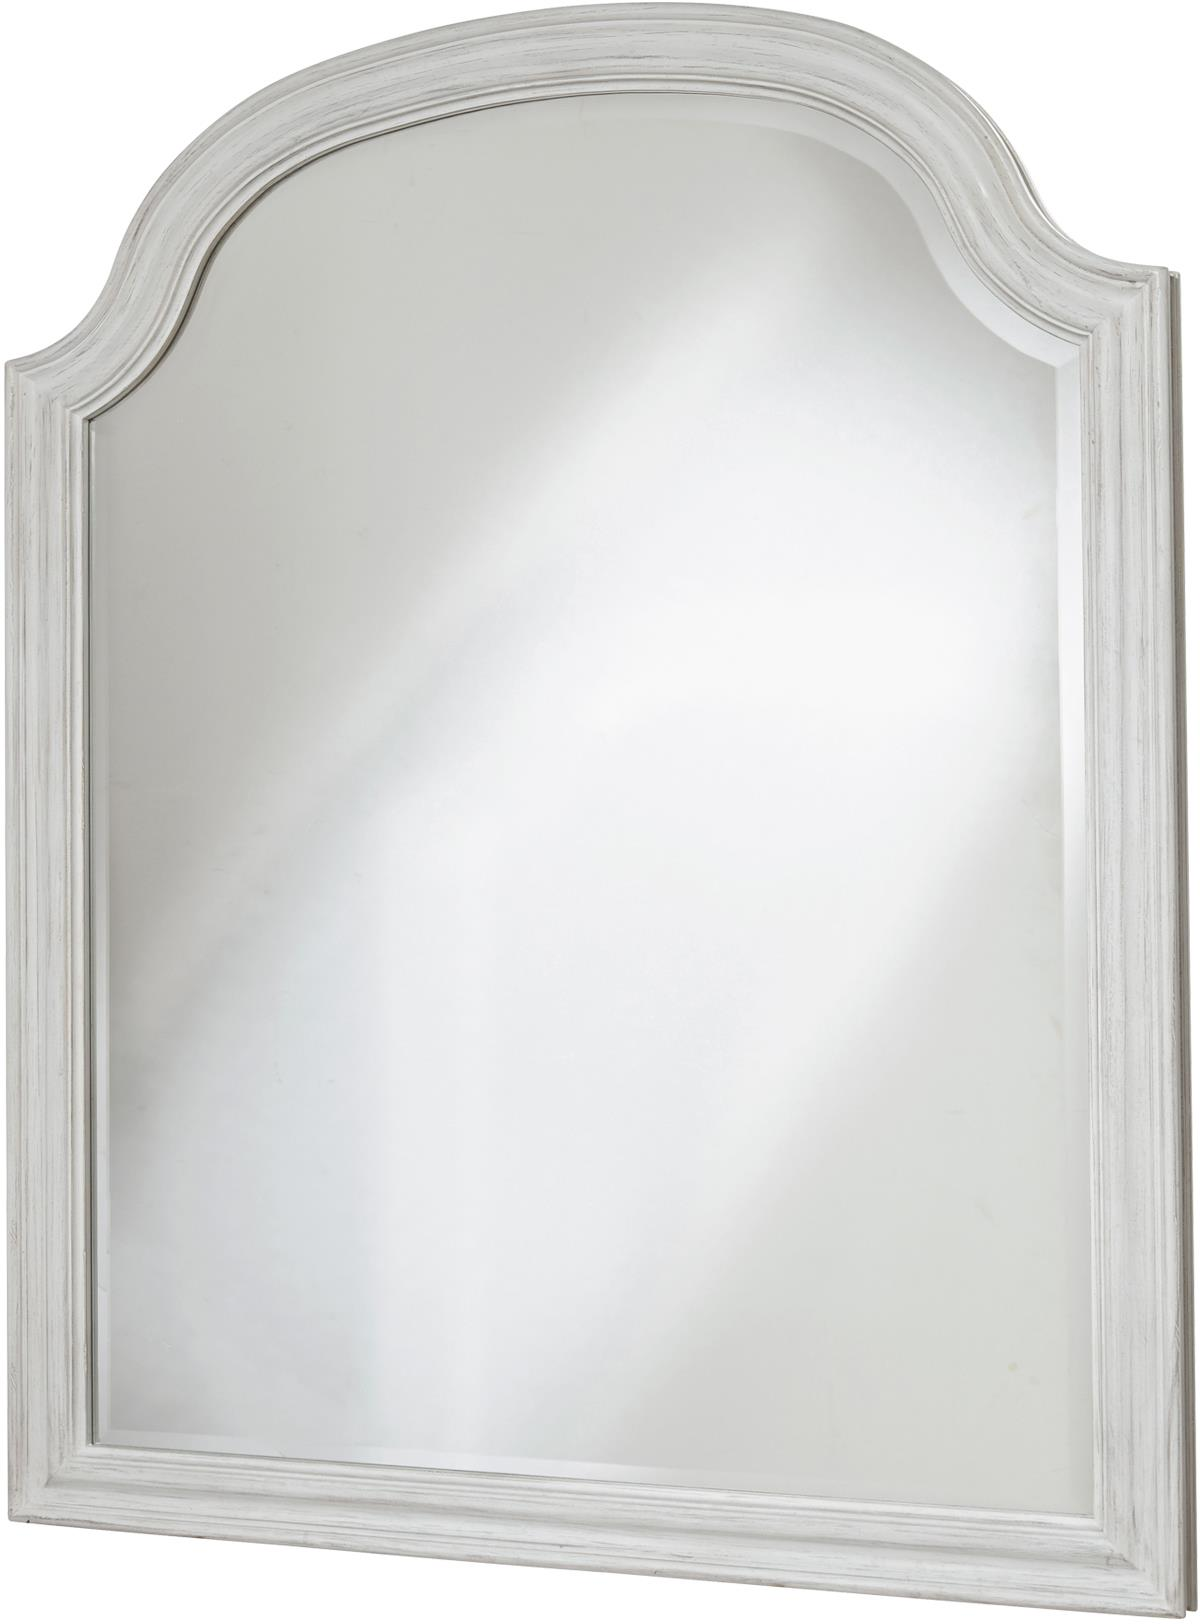 Paula Deen by Universal Dogwood Mirror - Item Number: 59704M